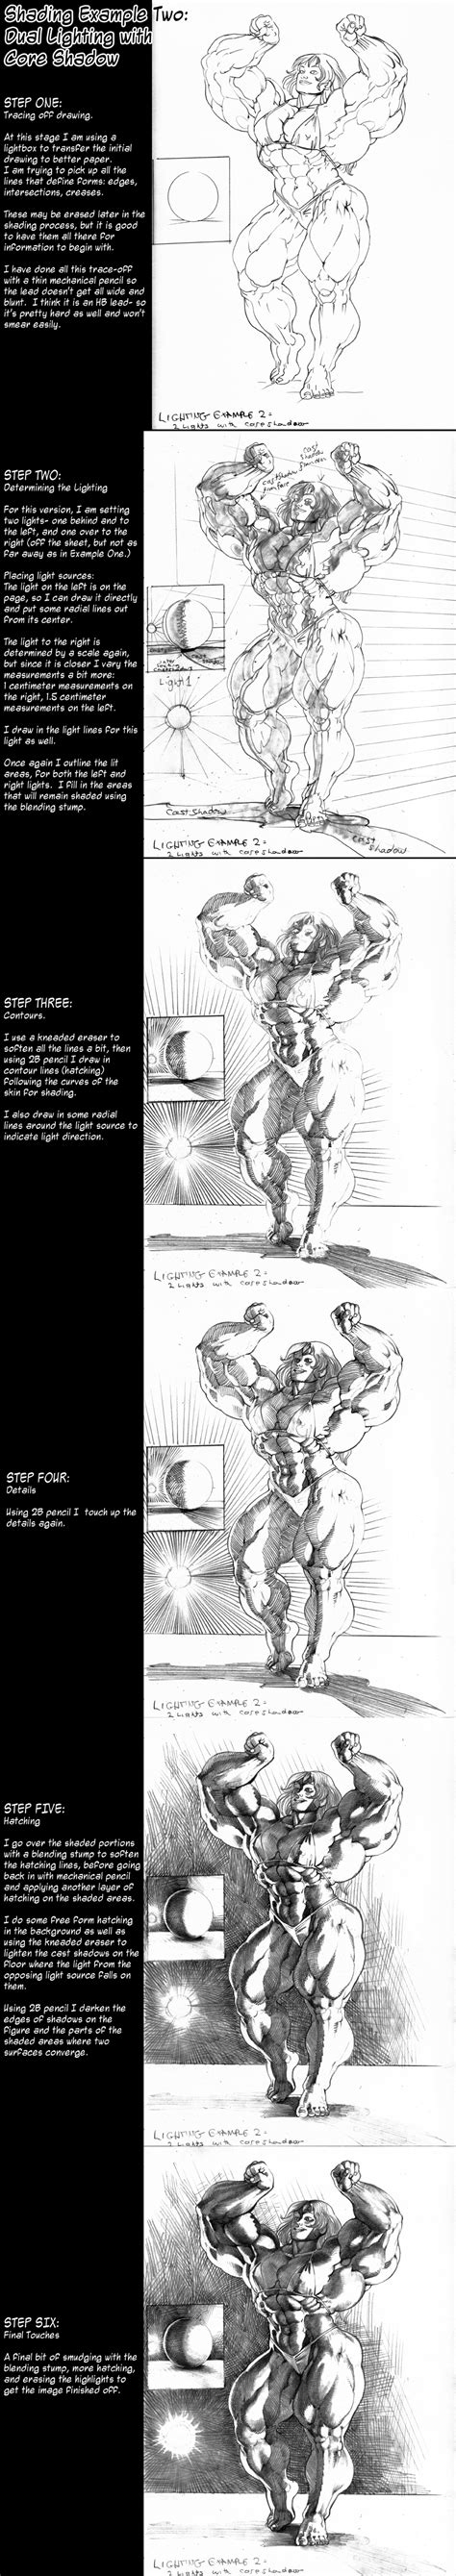 ex tutorial shading tutorial ex 2 steps by jebriodo on deviantart